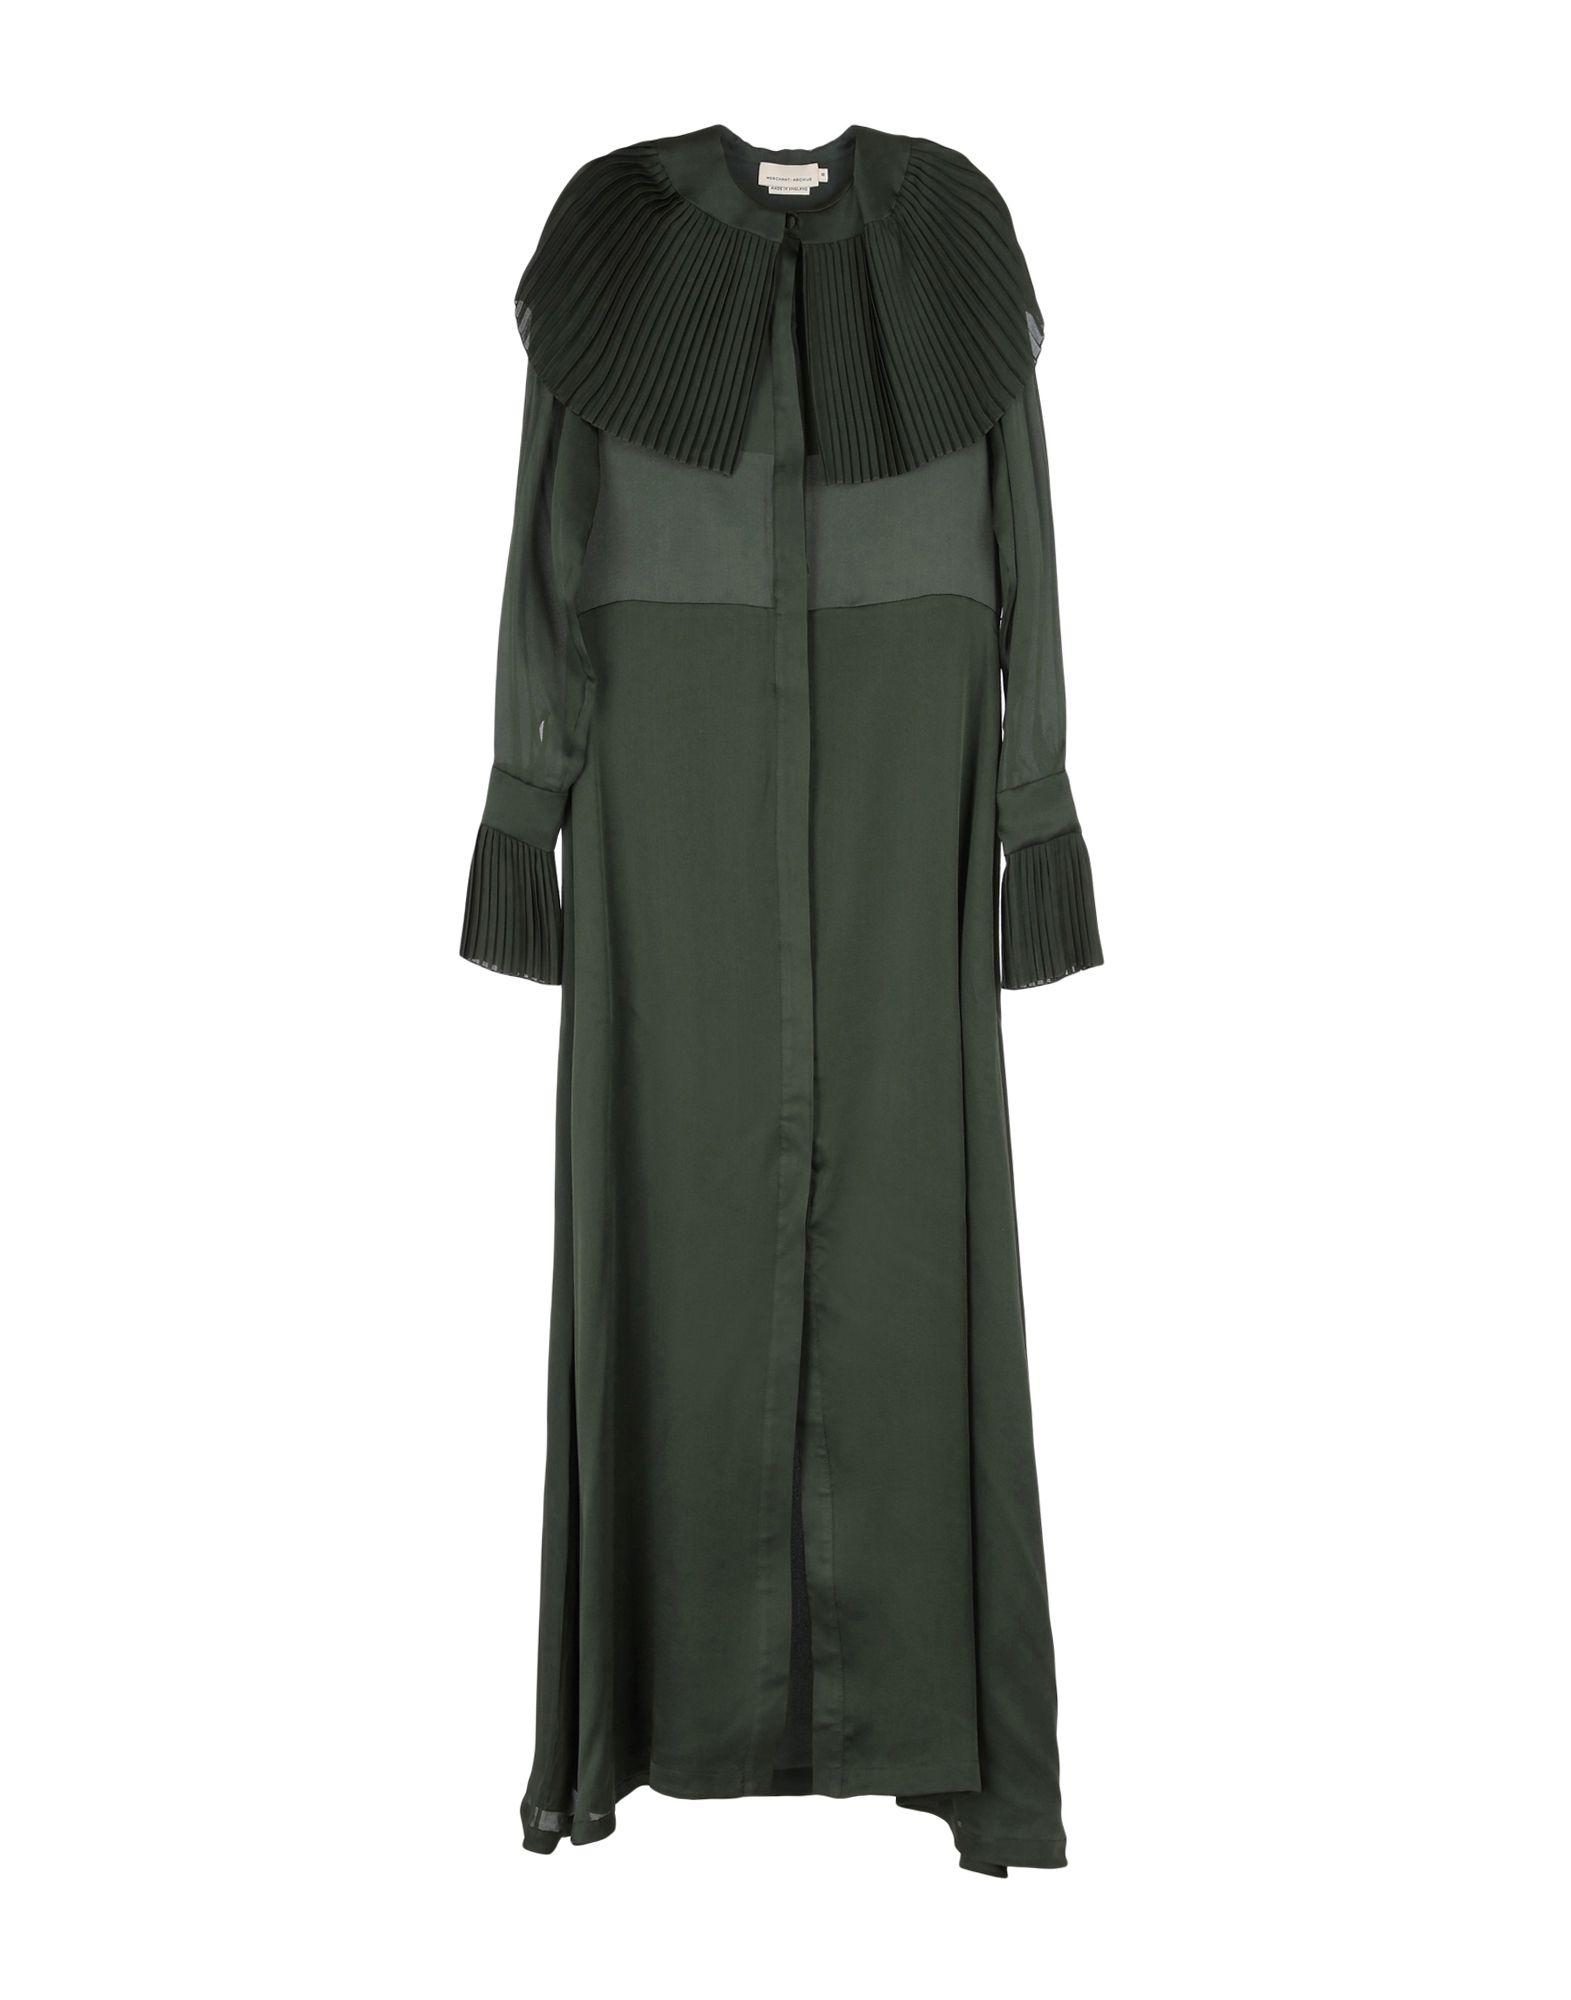 Merchant Archive Long Dress In Military Green